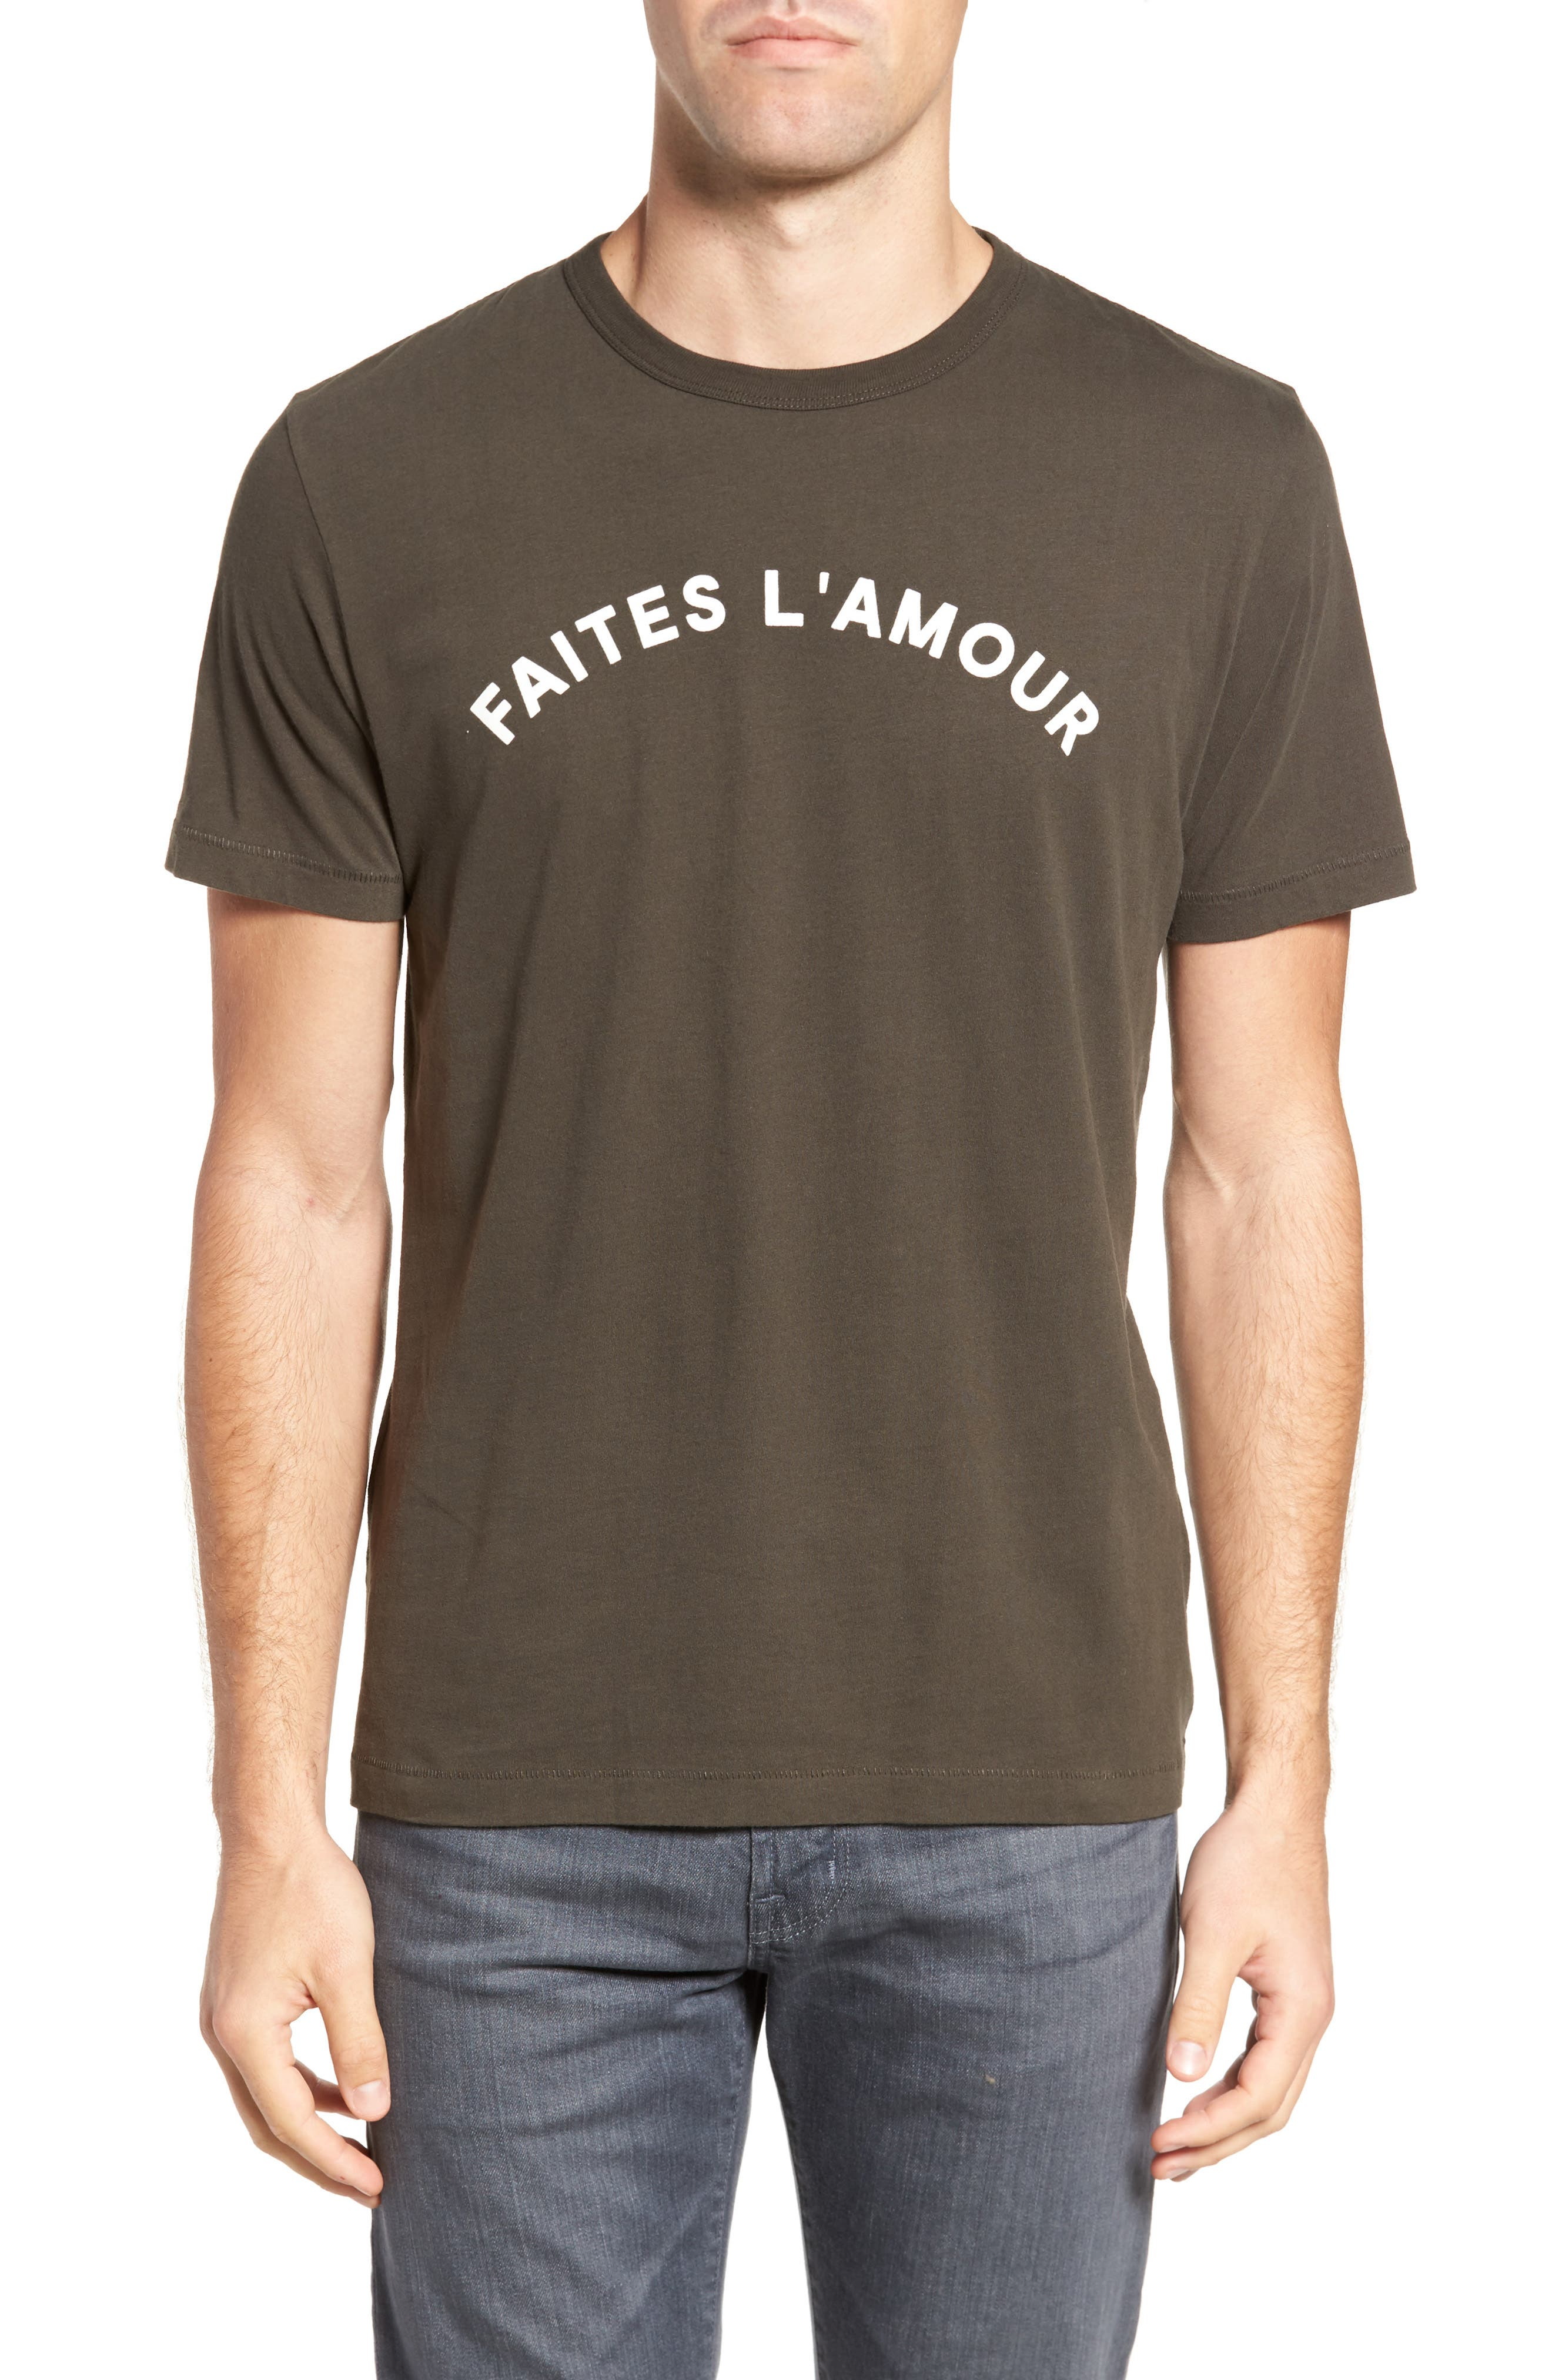 Alternate Image 1 Selected - French Connection Faites L'Amour Regular Fit T-Shirt